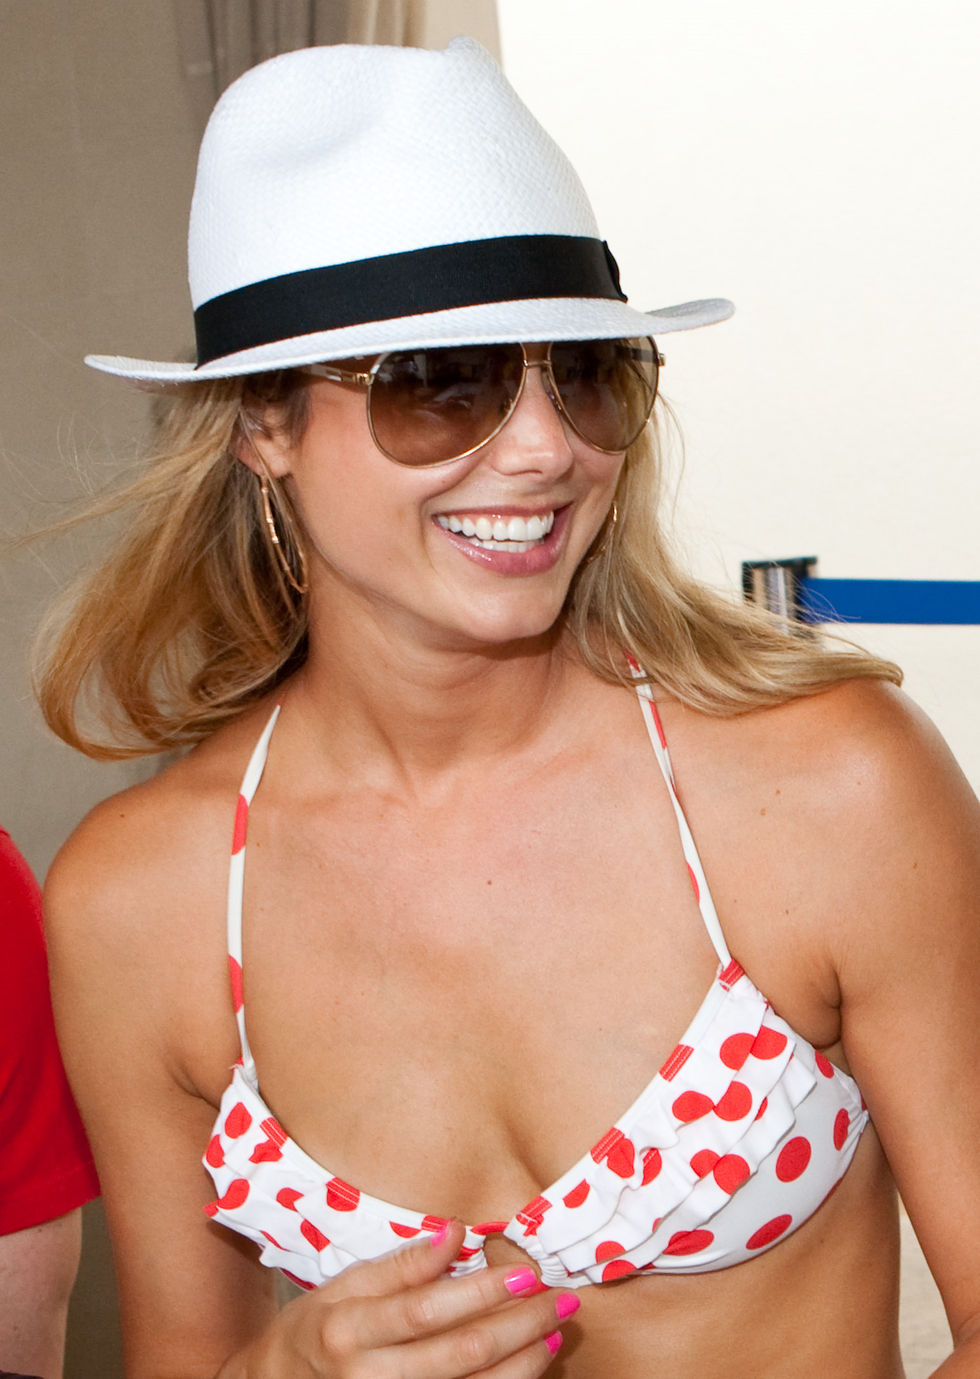 stacy-keibler-in-a-bikini-at-the-mgm-grand-in-las-vegas-05